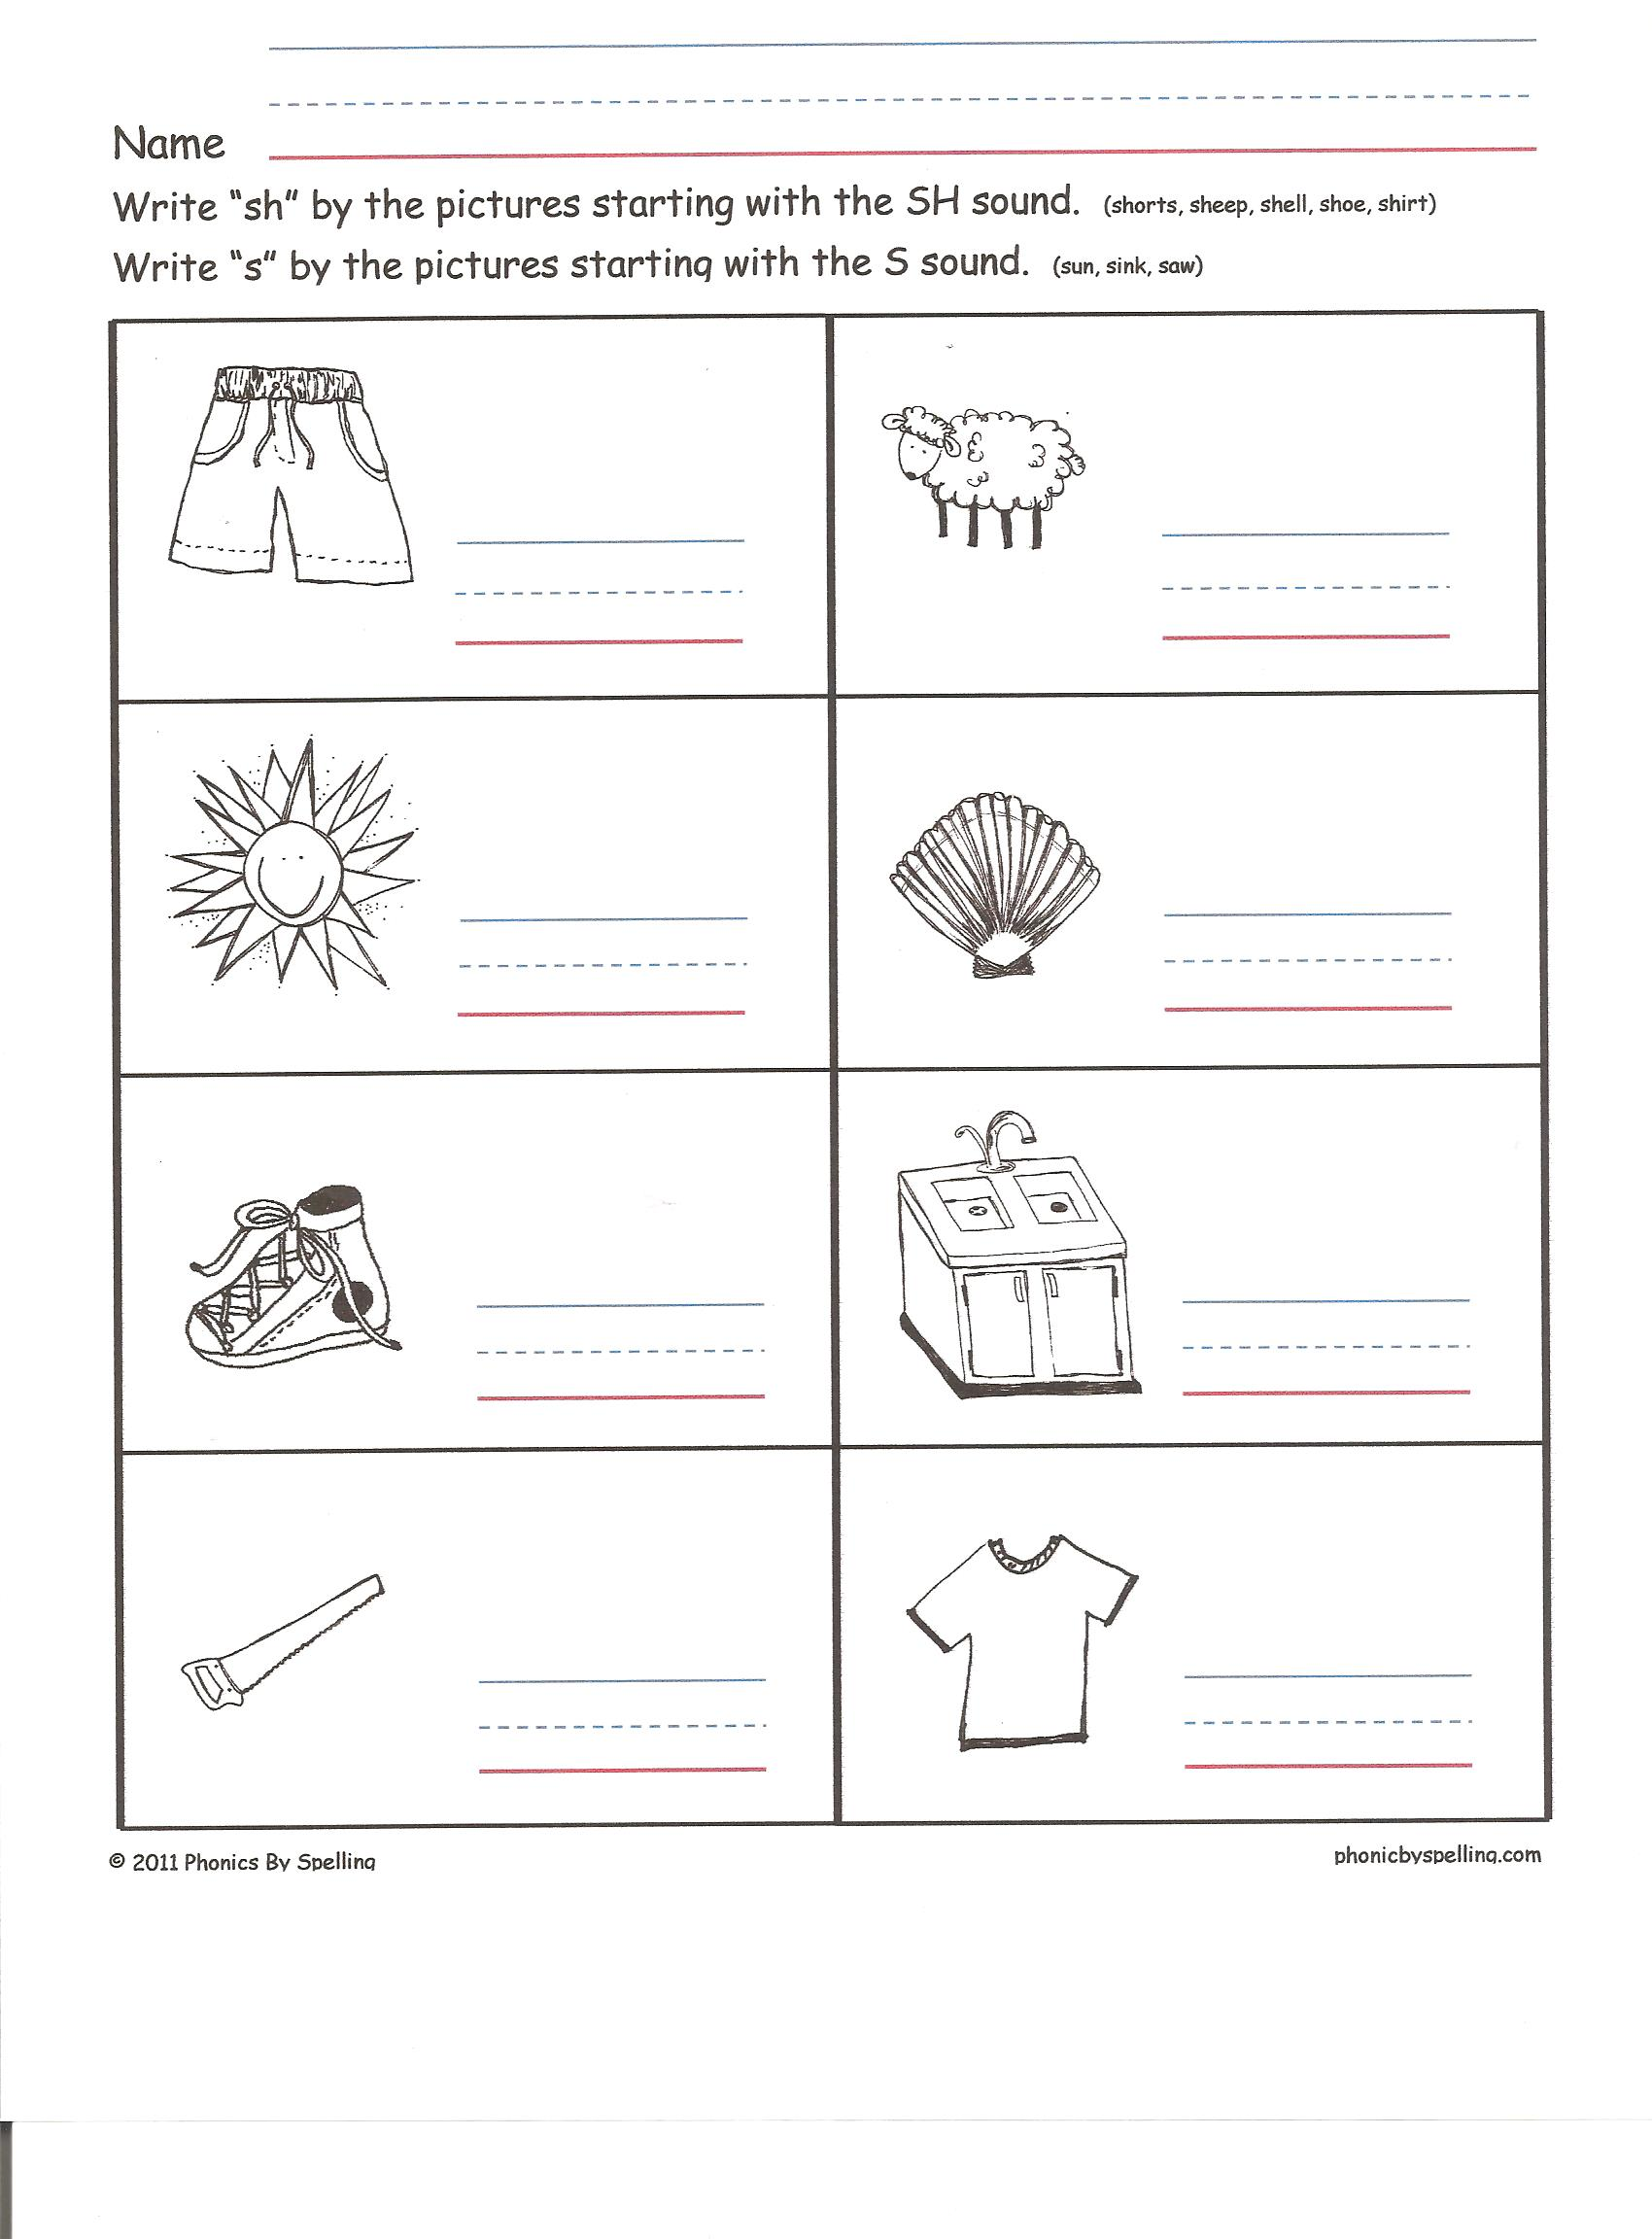 worksheet Or Worksheets or dont use phonics by spellings blog use